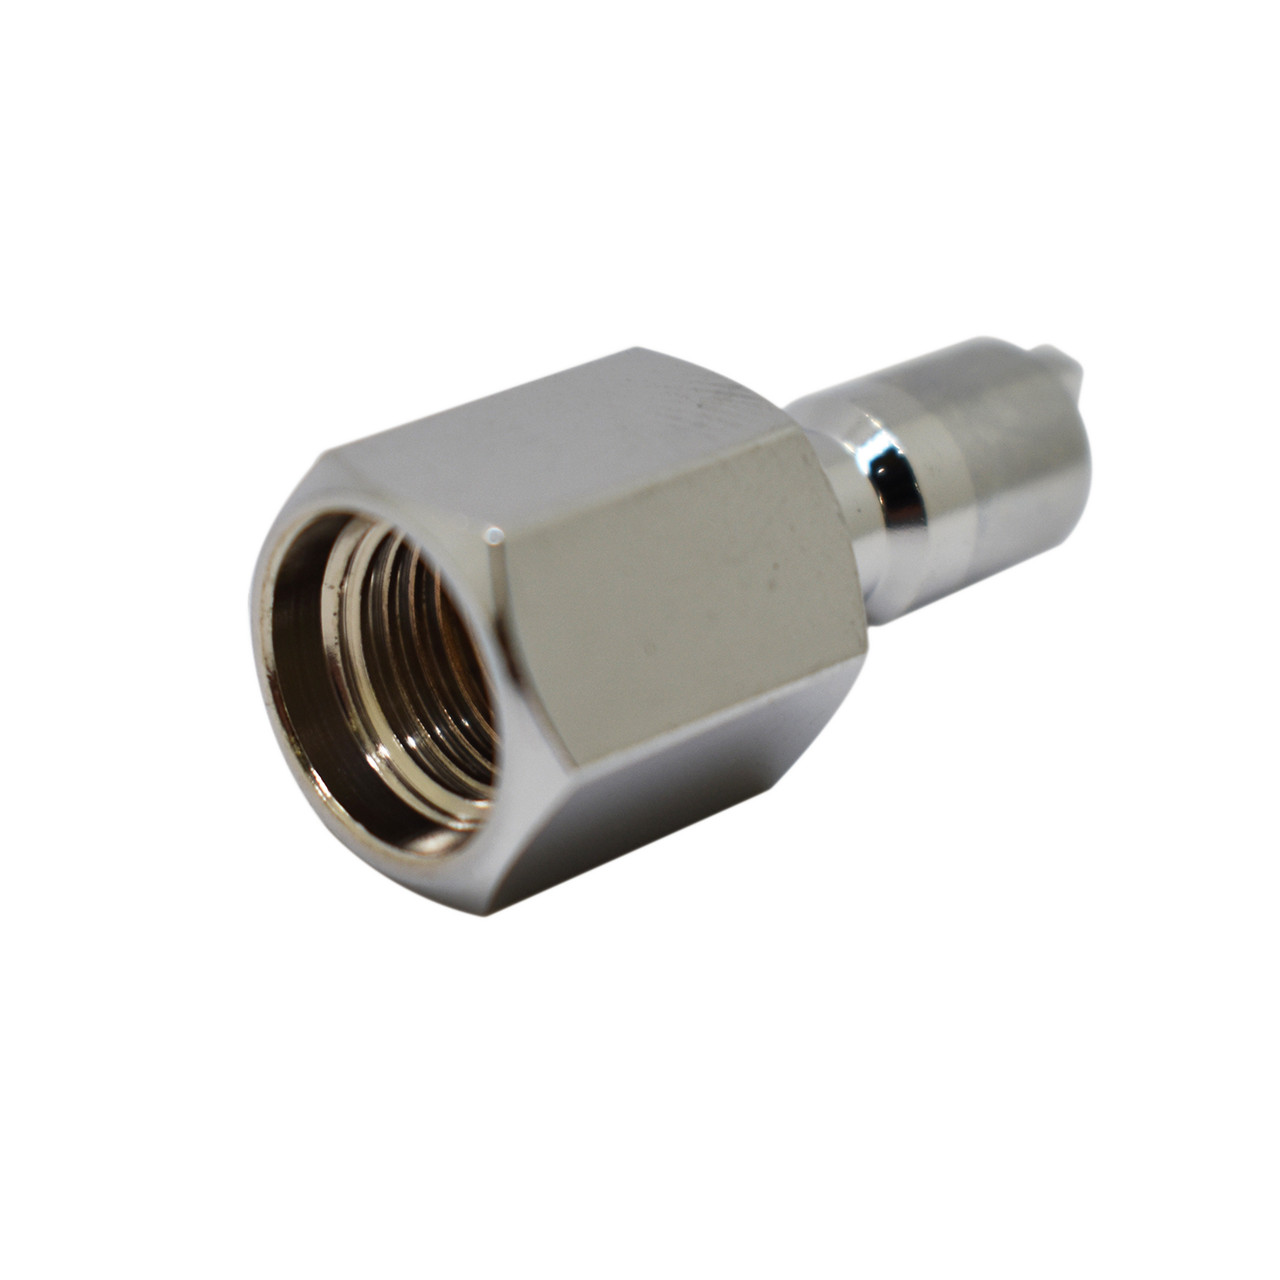 Scuba Diving BCD Seaquest Male BC to Male 1//4 NPT Adaptor